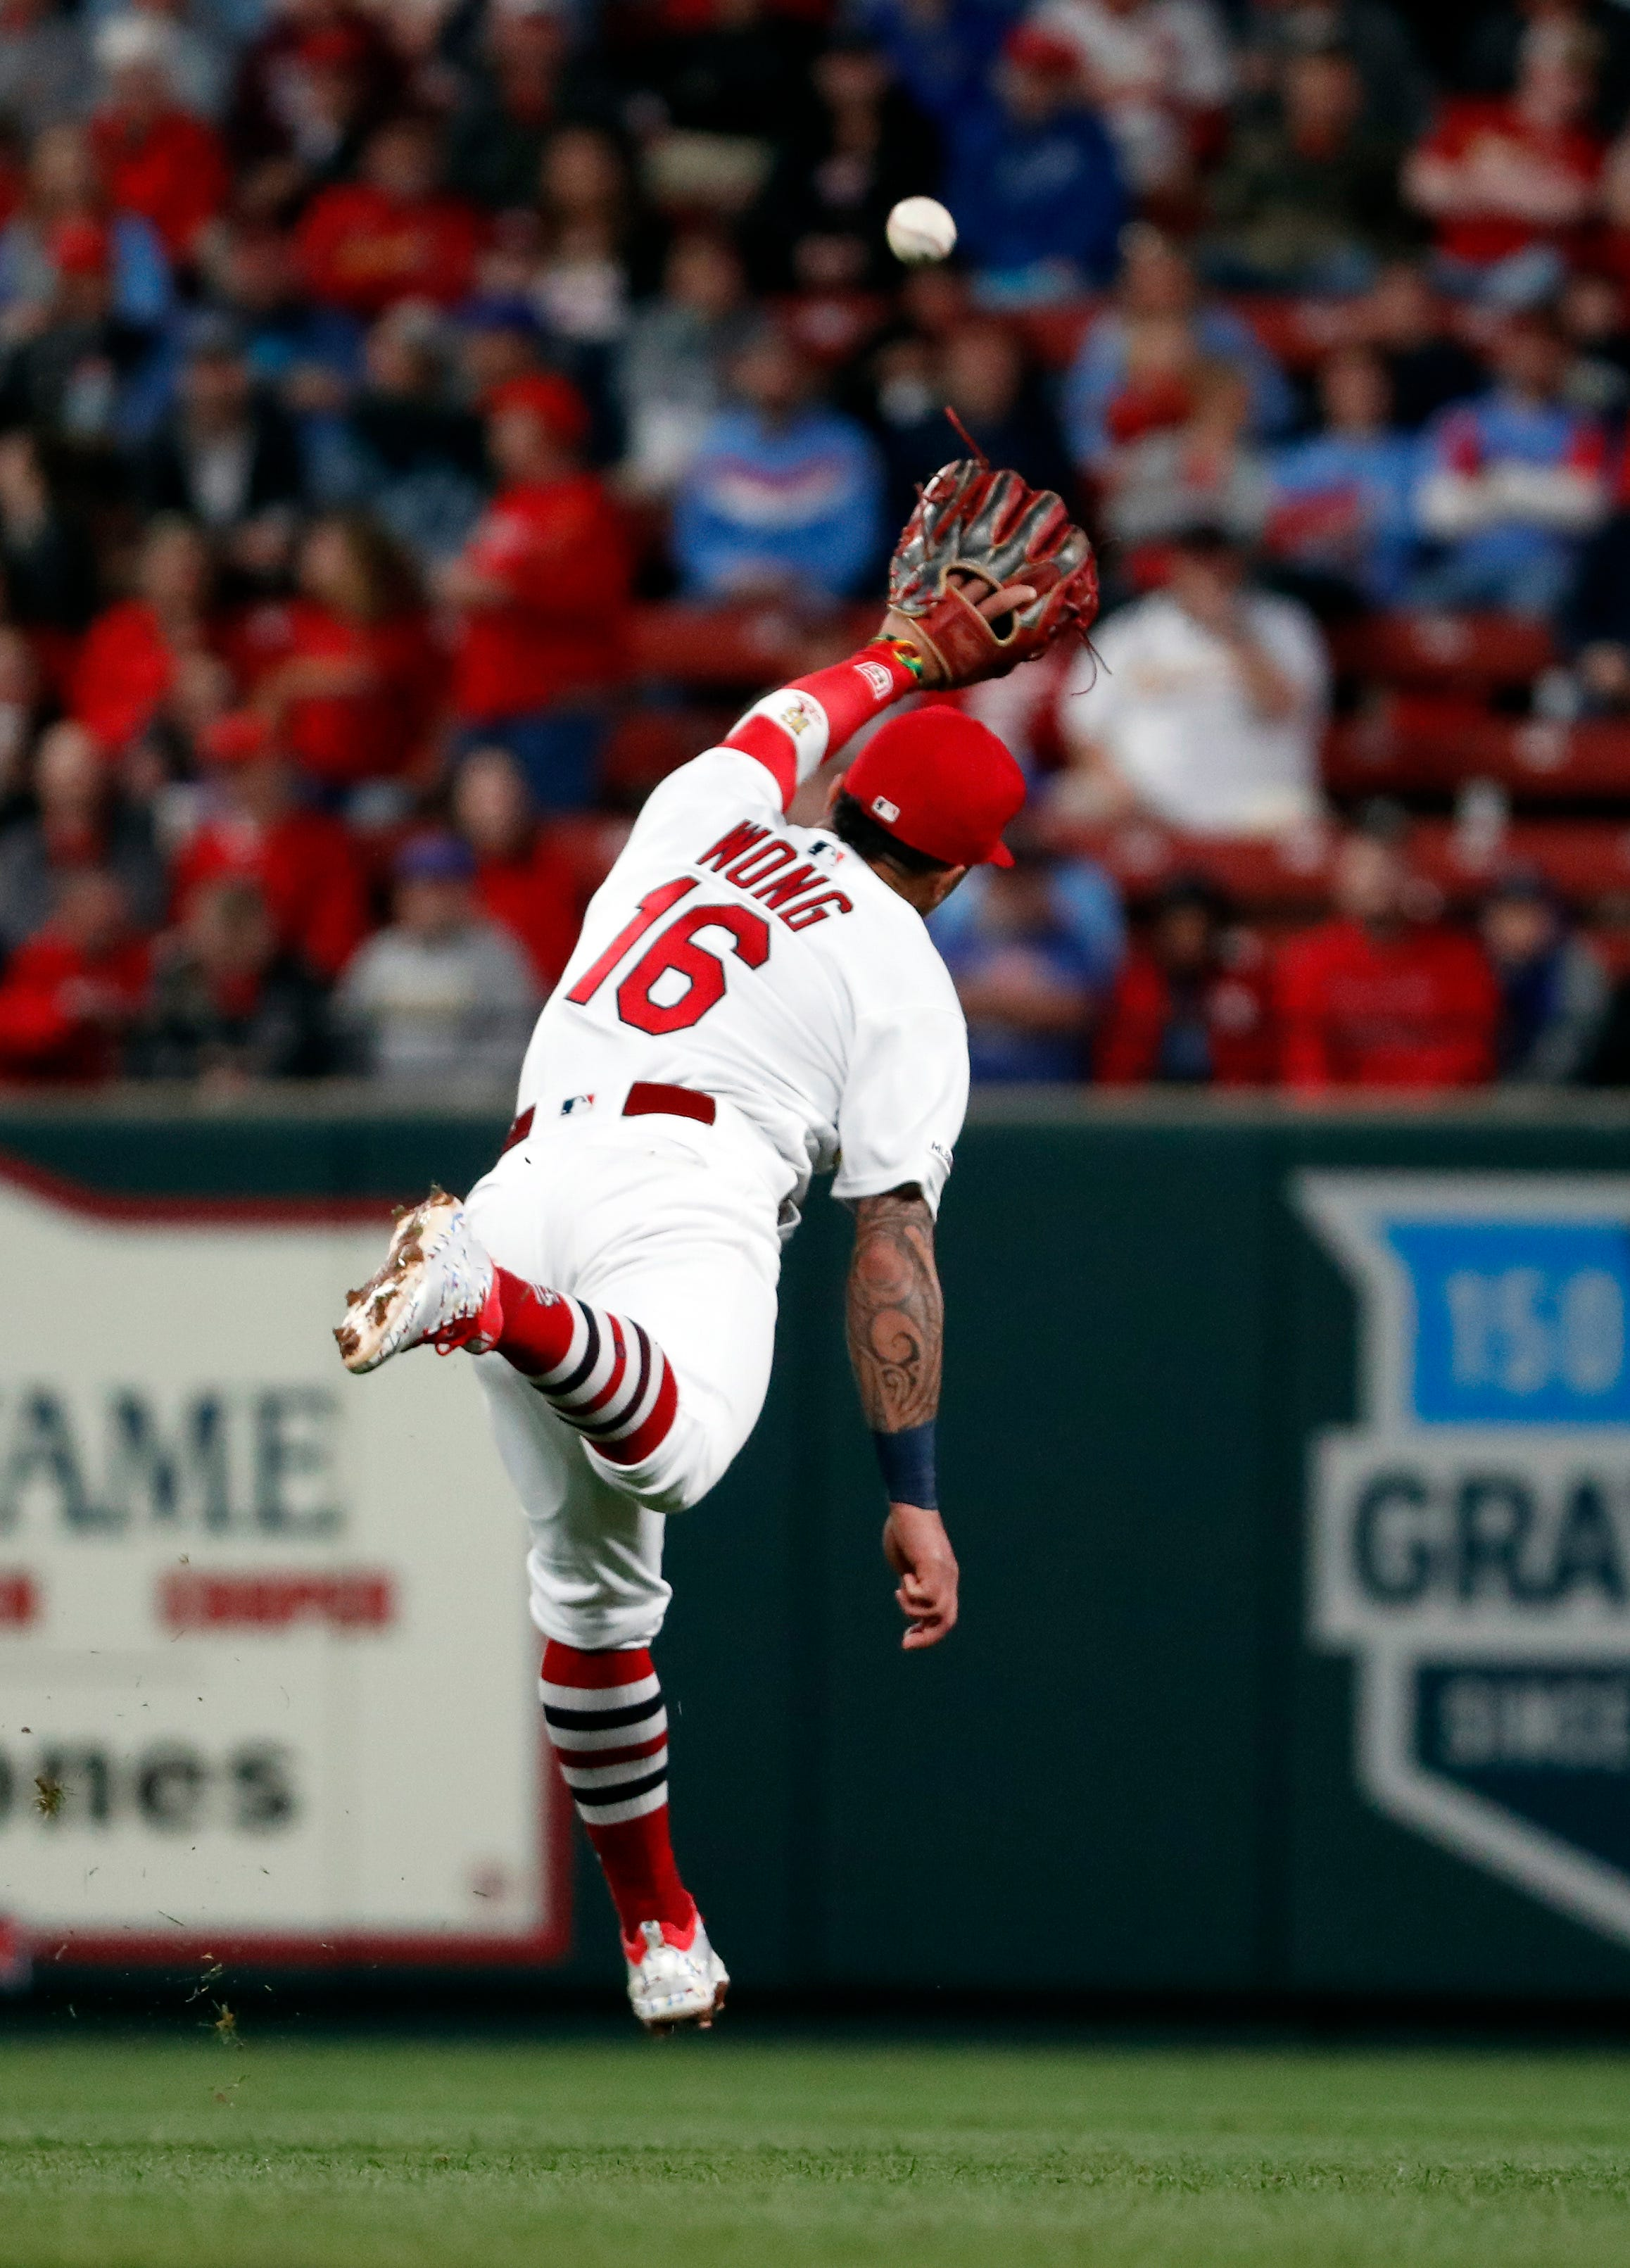 Frazier, Williams lead Pirates to 2-1 win over Cardinals